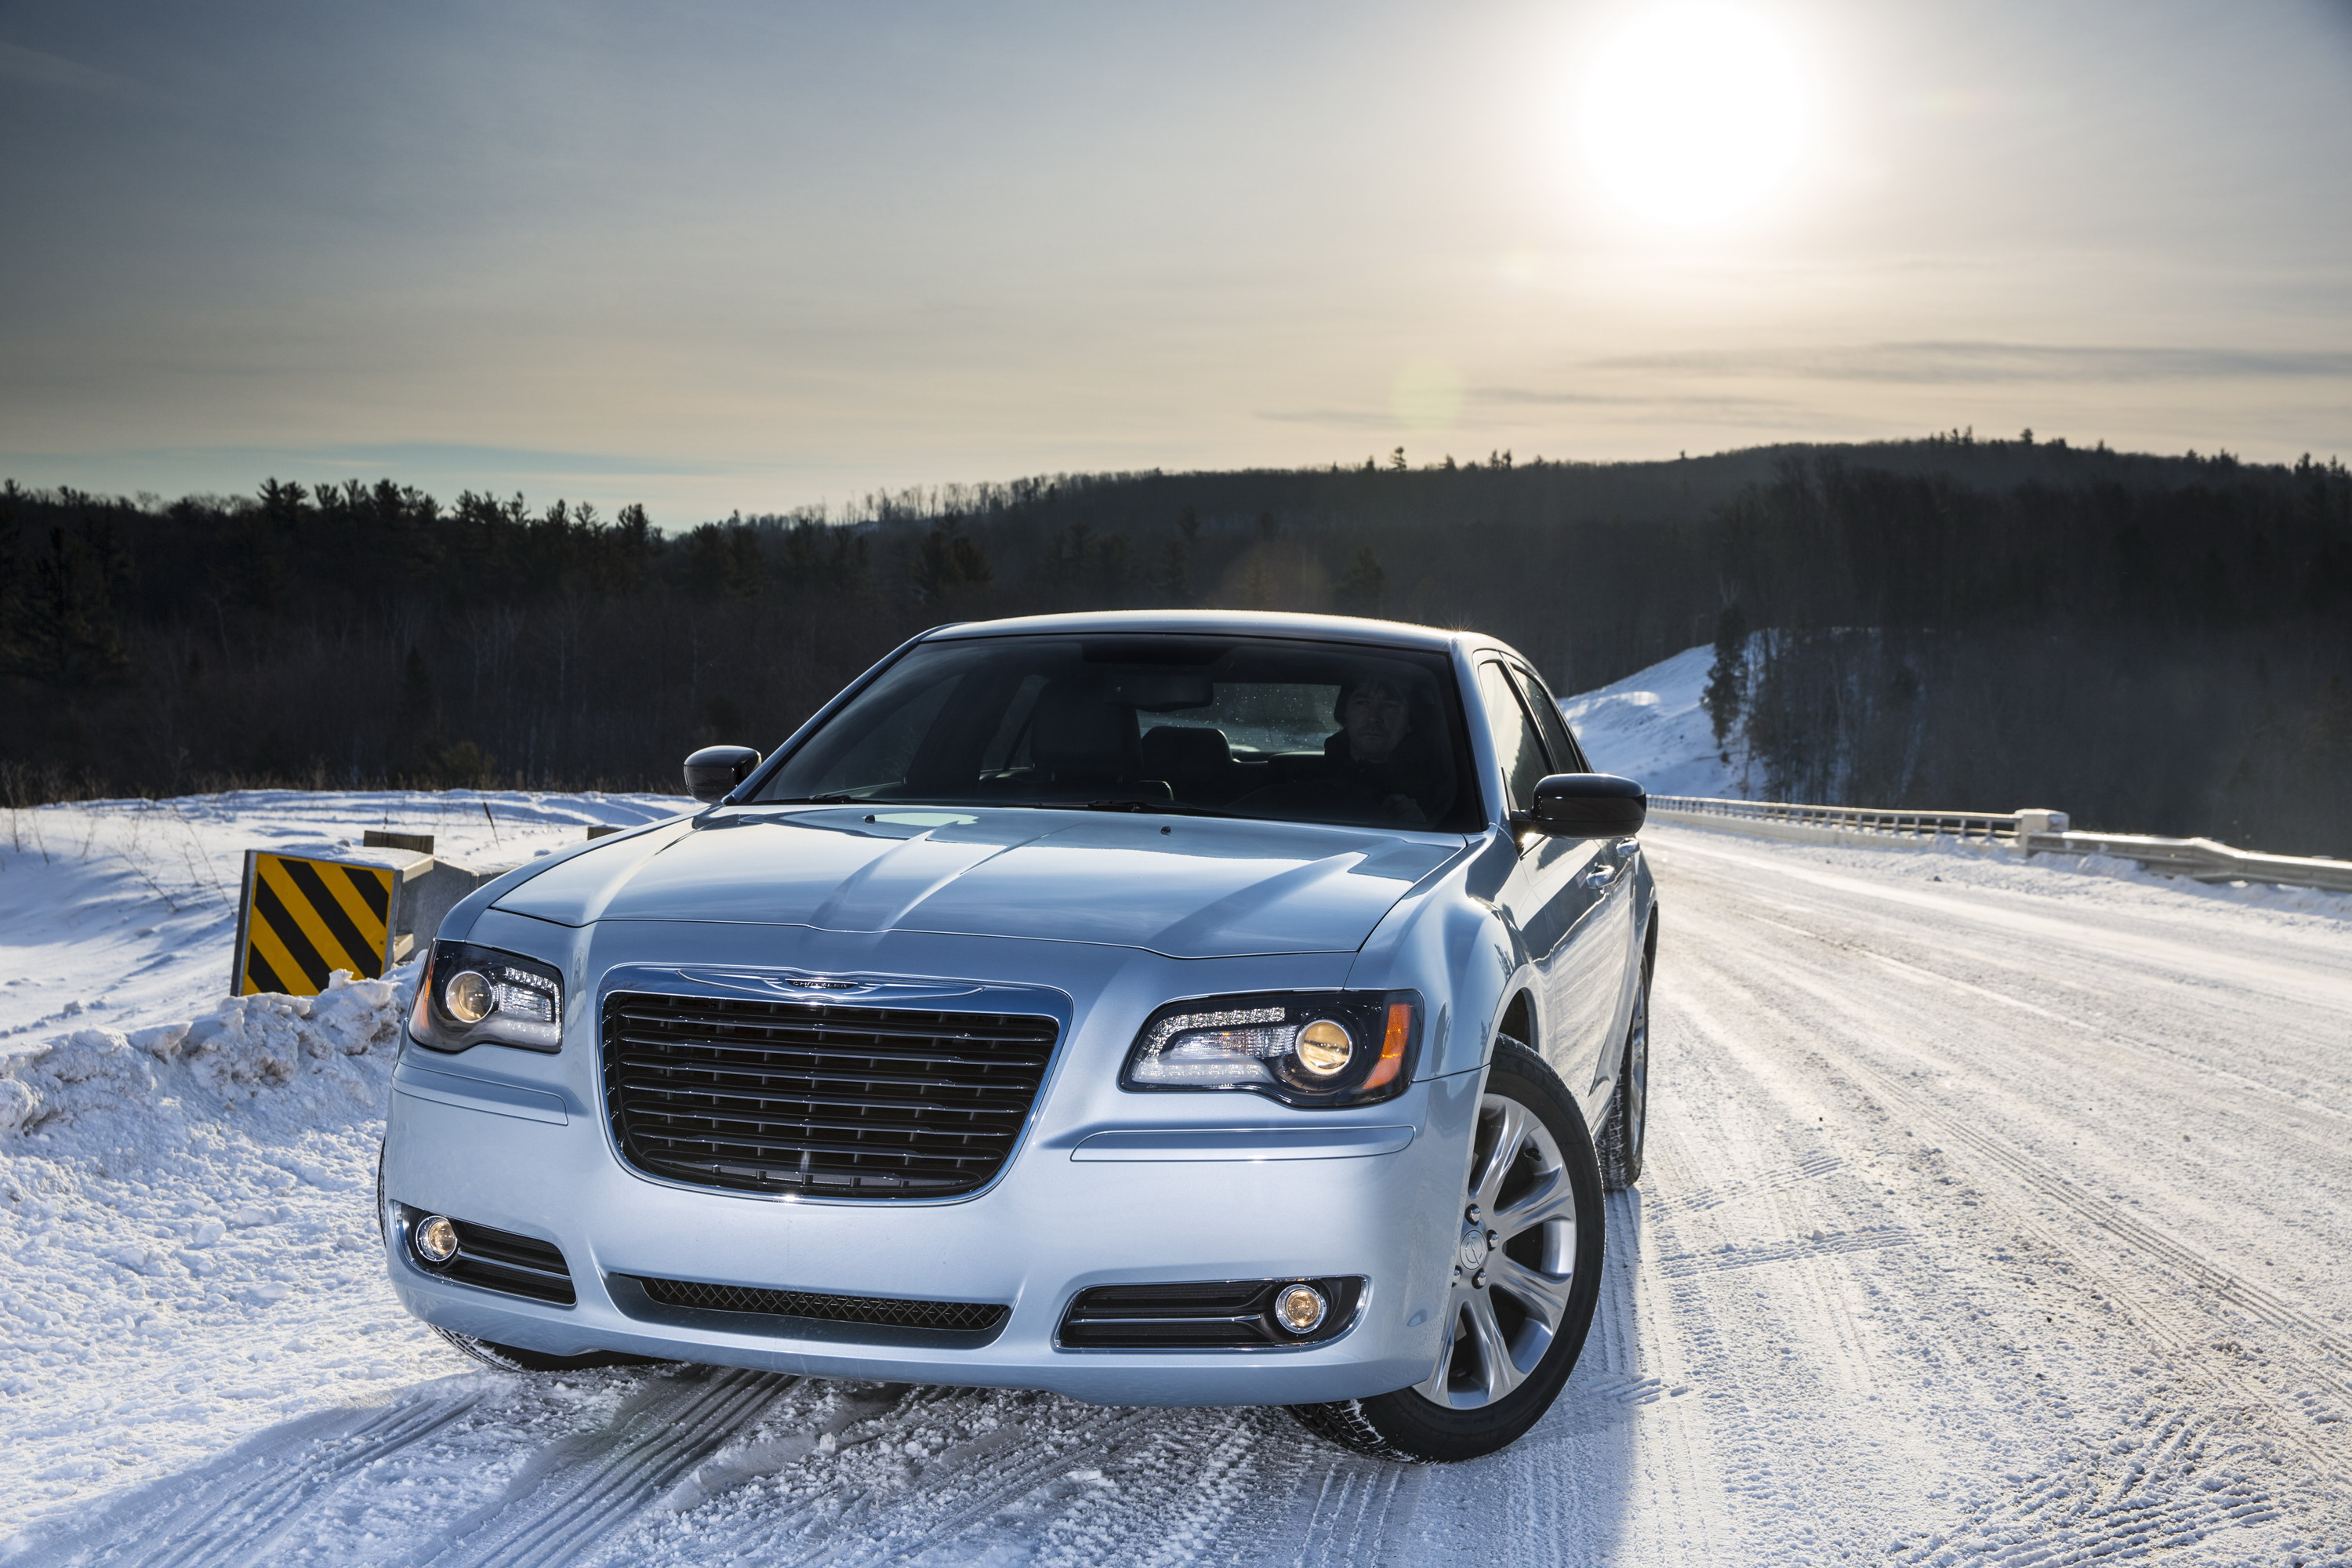 2013 Chrysler 300 Glacier Edition Top Speed